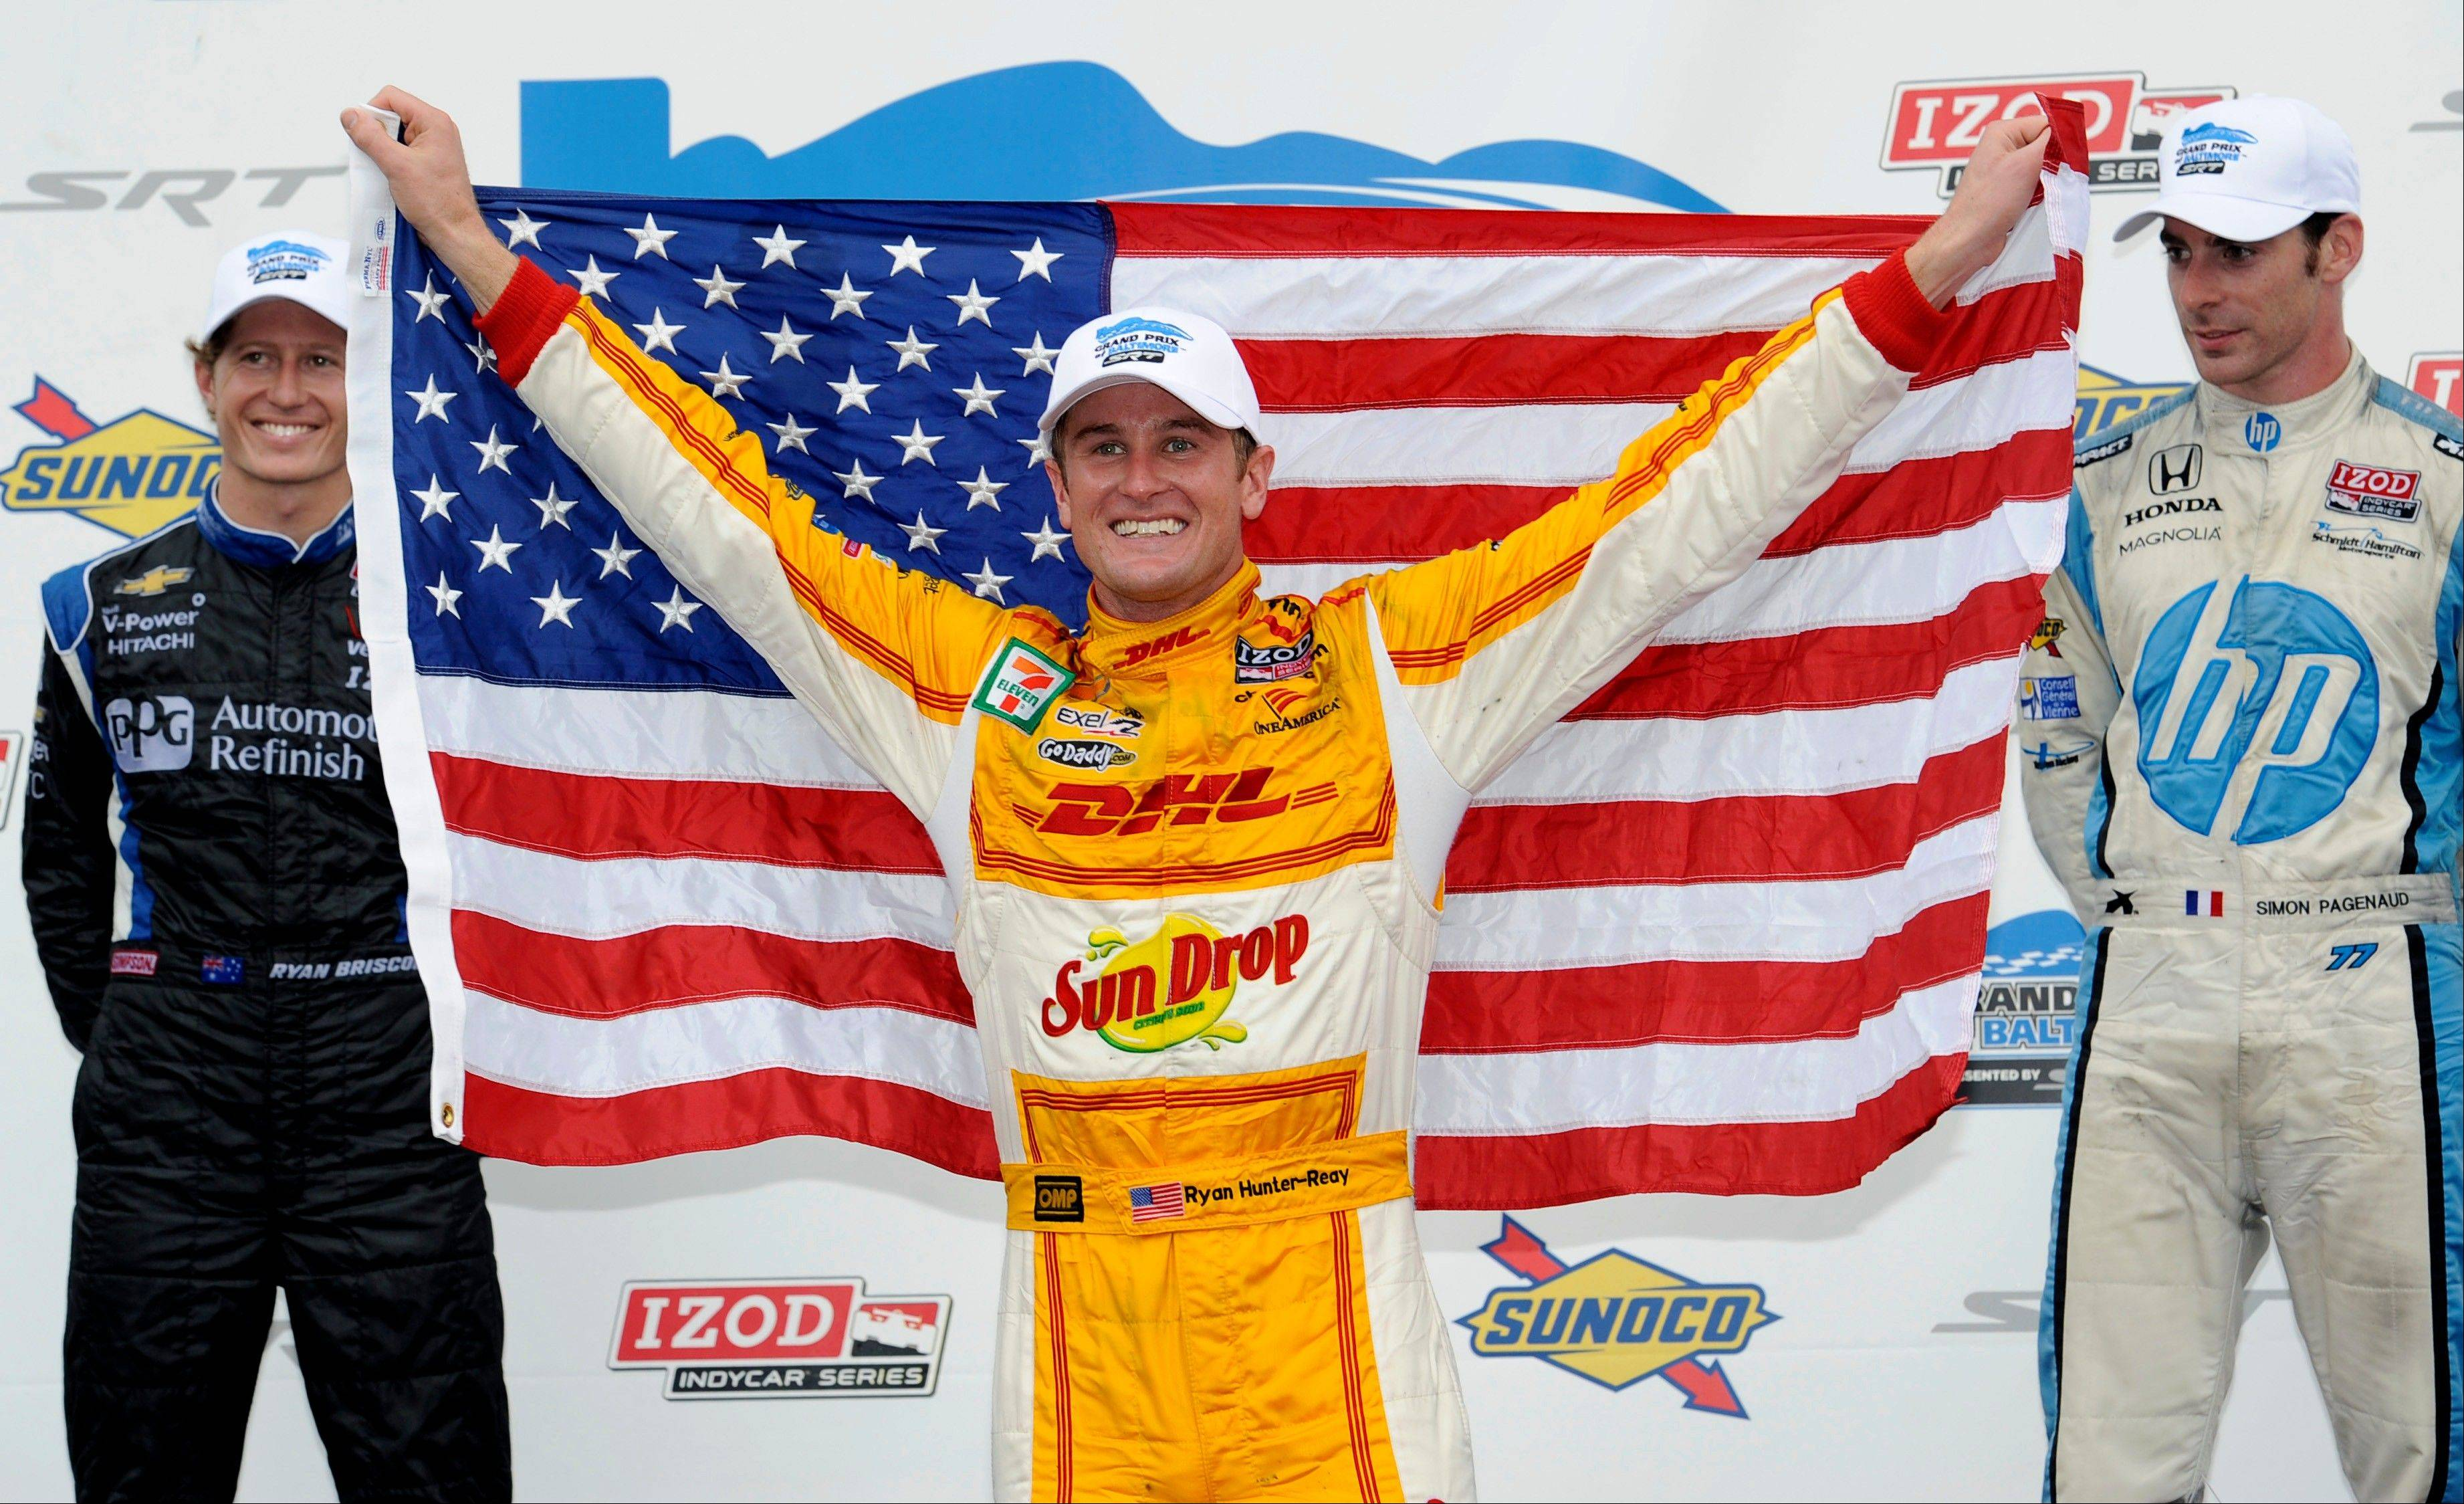 Associated PressRyan Hunter-Reay celebrates in victory lane after winning the IZOD IndyCar Grand Prix of Baltimore Sunday. At left is runner up Ryan Briscoe of Australia, and at right is Simon Pagenaud of France, third-place finisher.